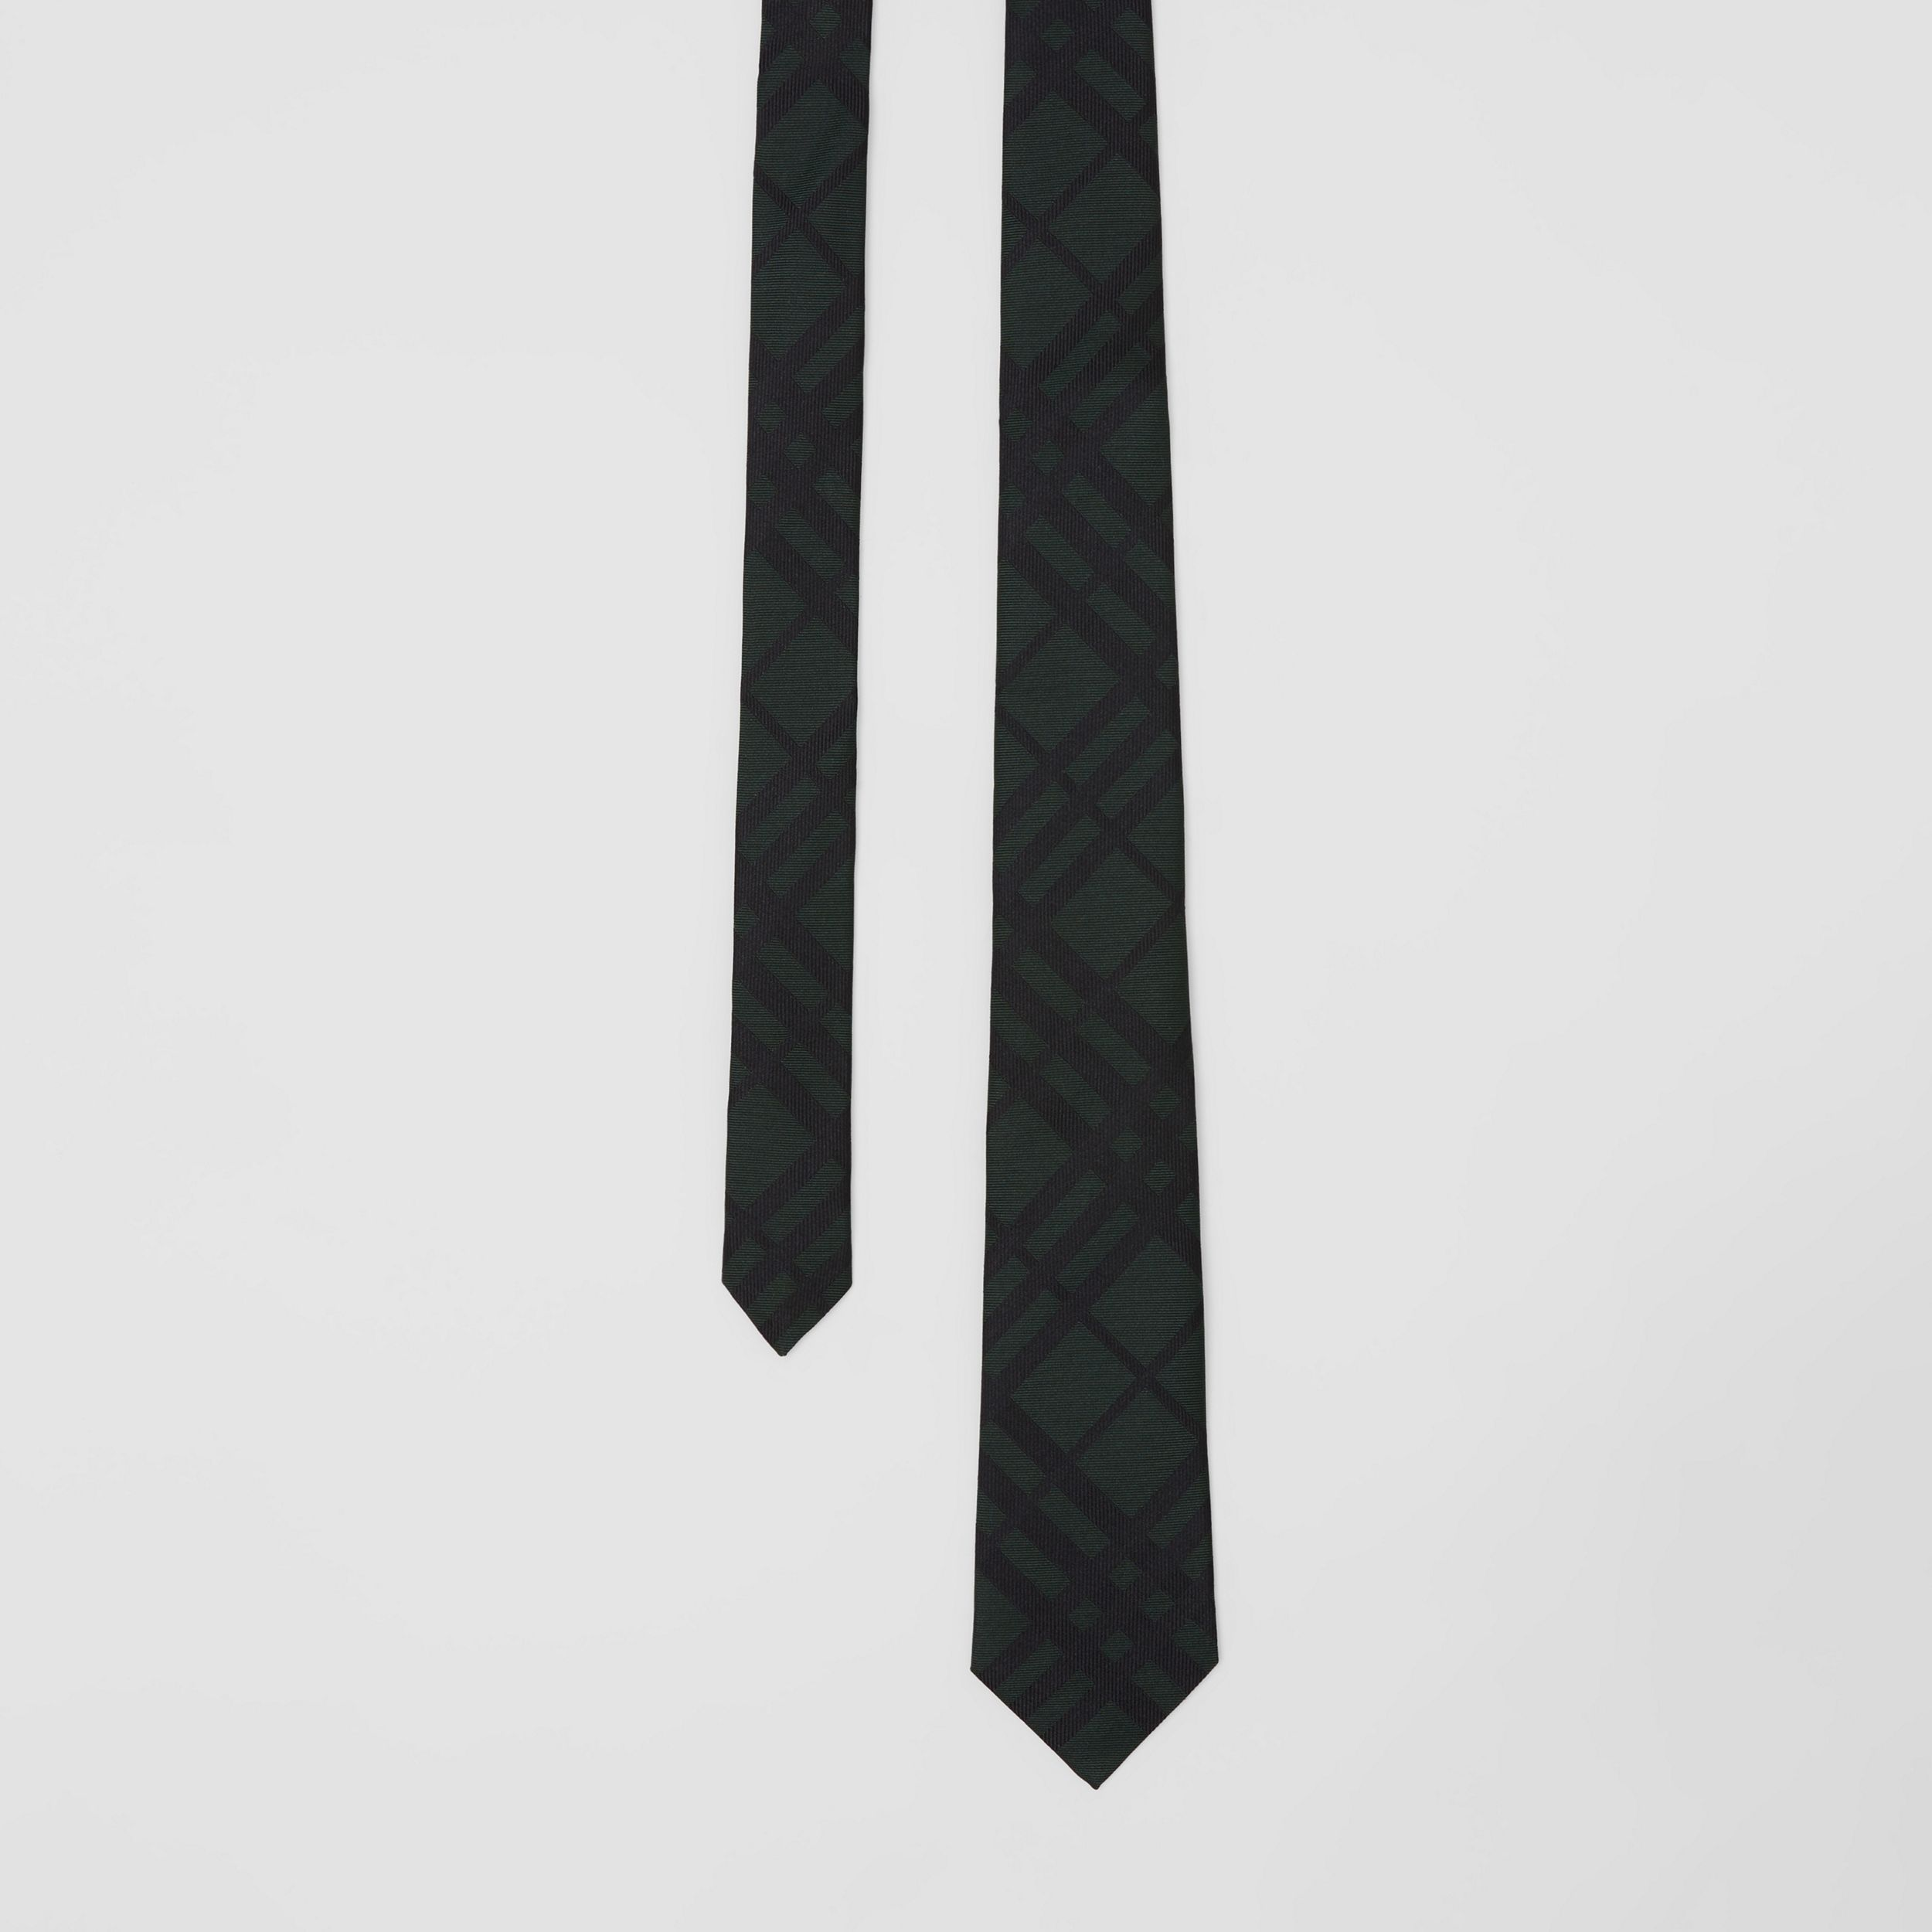 Classic Cut Check Silk Jacquard Tie in Dark Forest Green - Men | Burberry Canada - 1